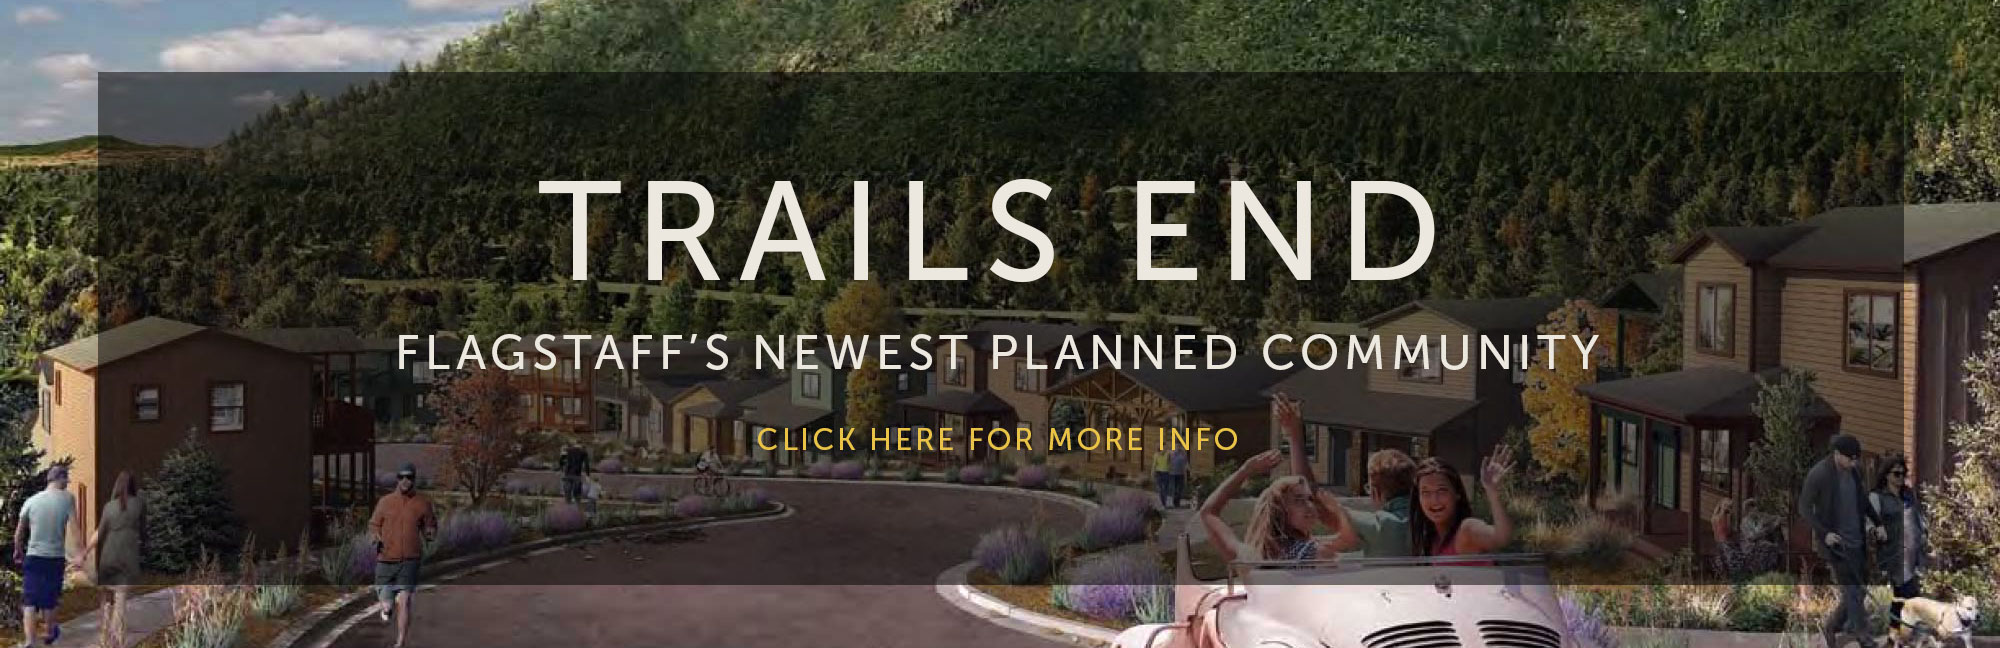 Trails End - Flagstaff's newest planned community - click here for more info